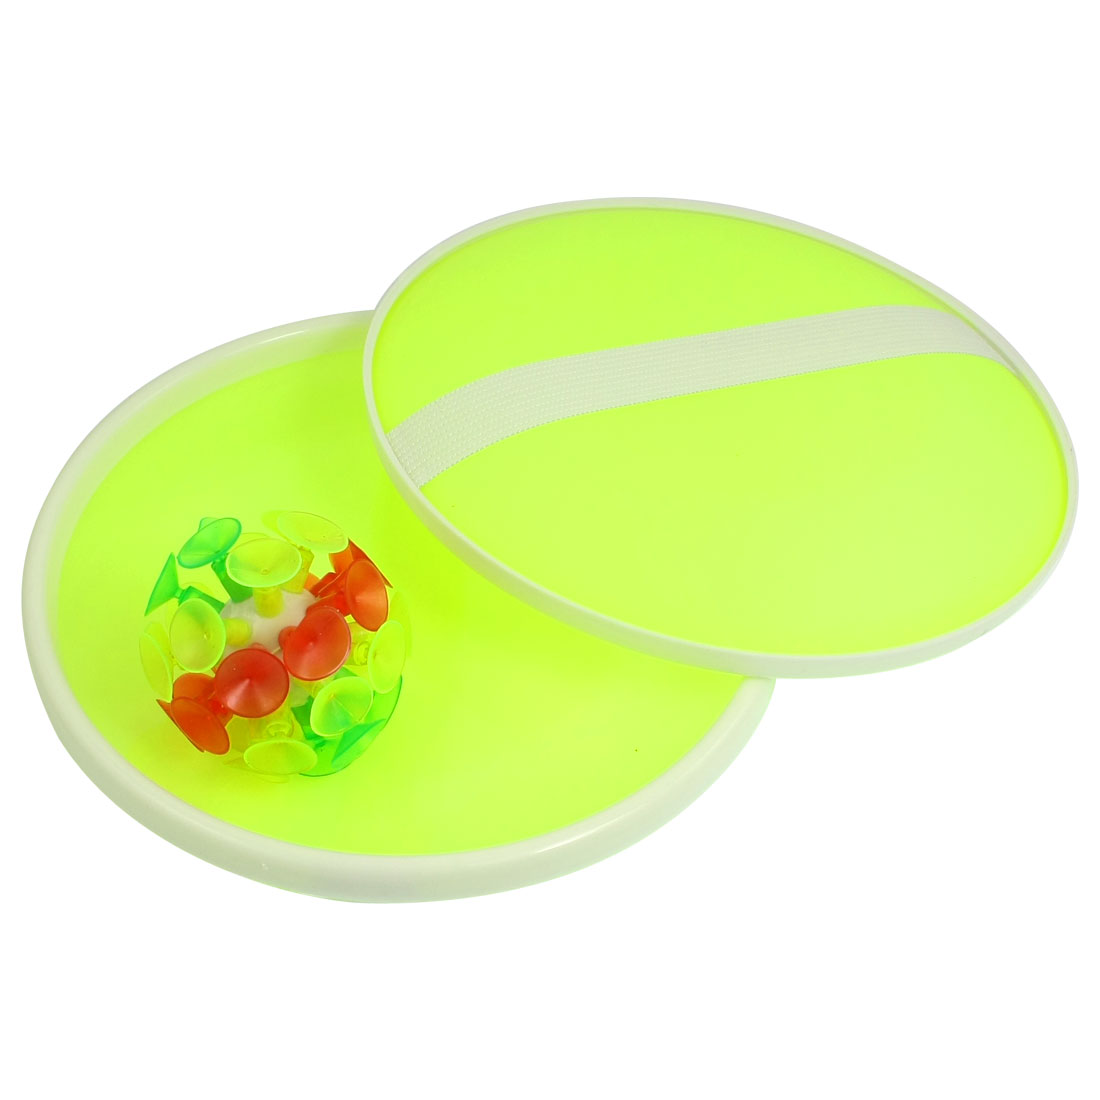 Child Pair Yellowgreen Catchers Colorful Silicone Suction Ball Toss Game Toy